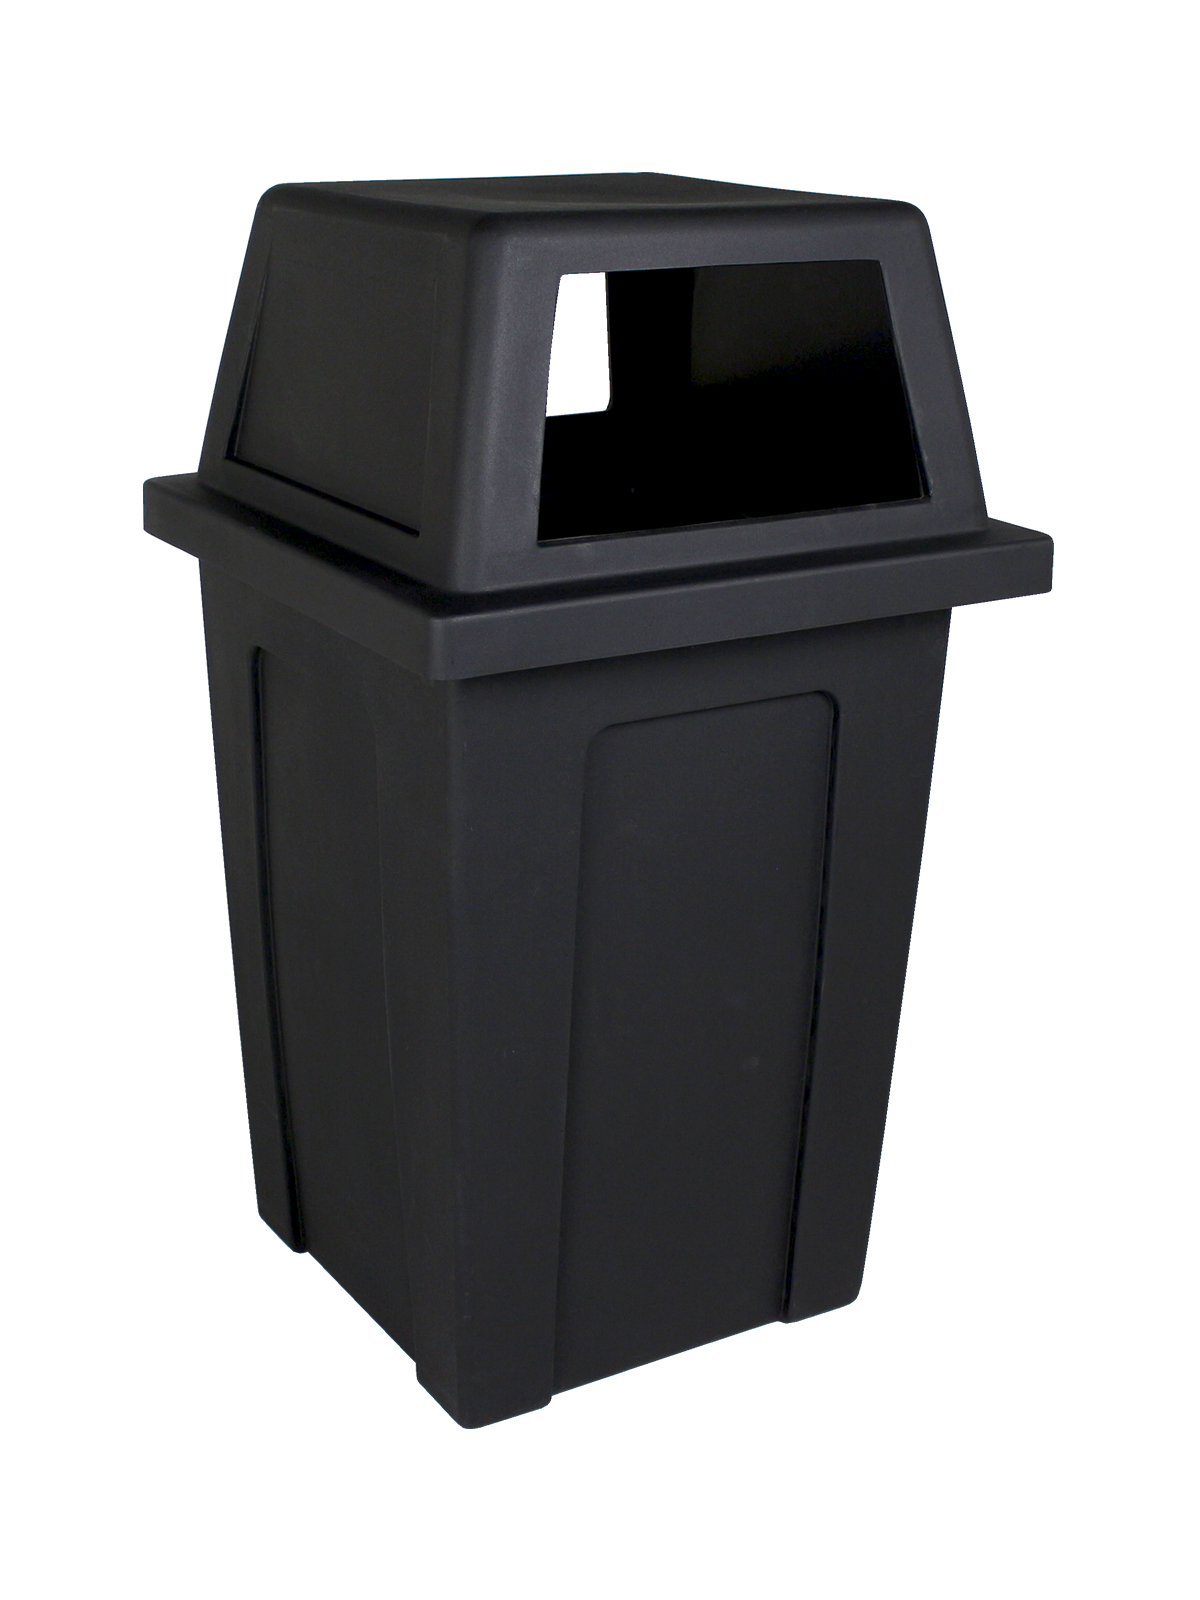 SENTRY - Single - Unit - Full - Black